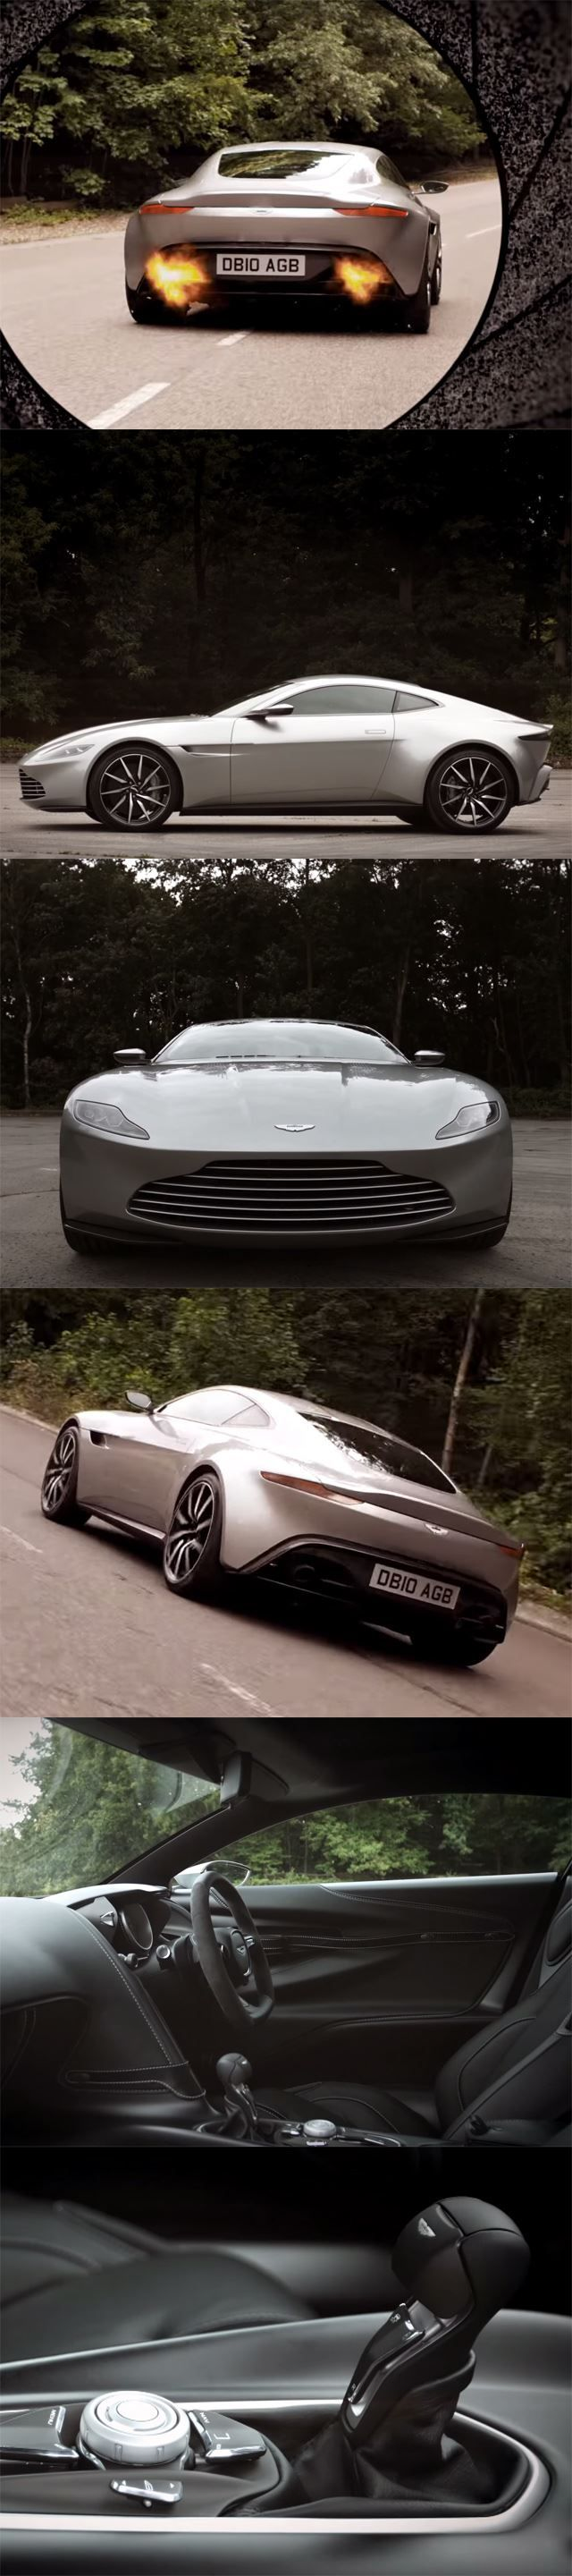 The new custom-made Aston Martin DB10 only for The Double O Agent, James Bond! https://www.amazon.com/Kingseye-Engineering-Construction-Educational-Excavator/dp/B075C1PX6Y